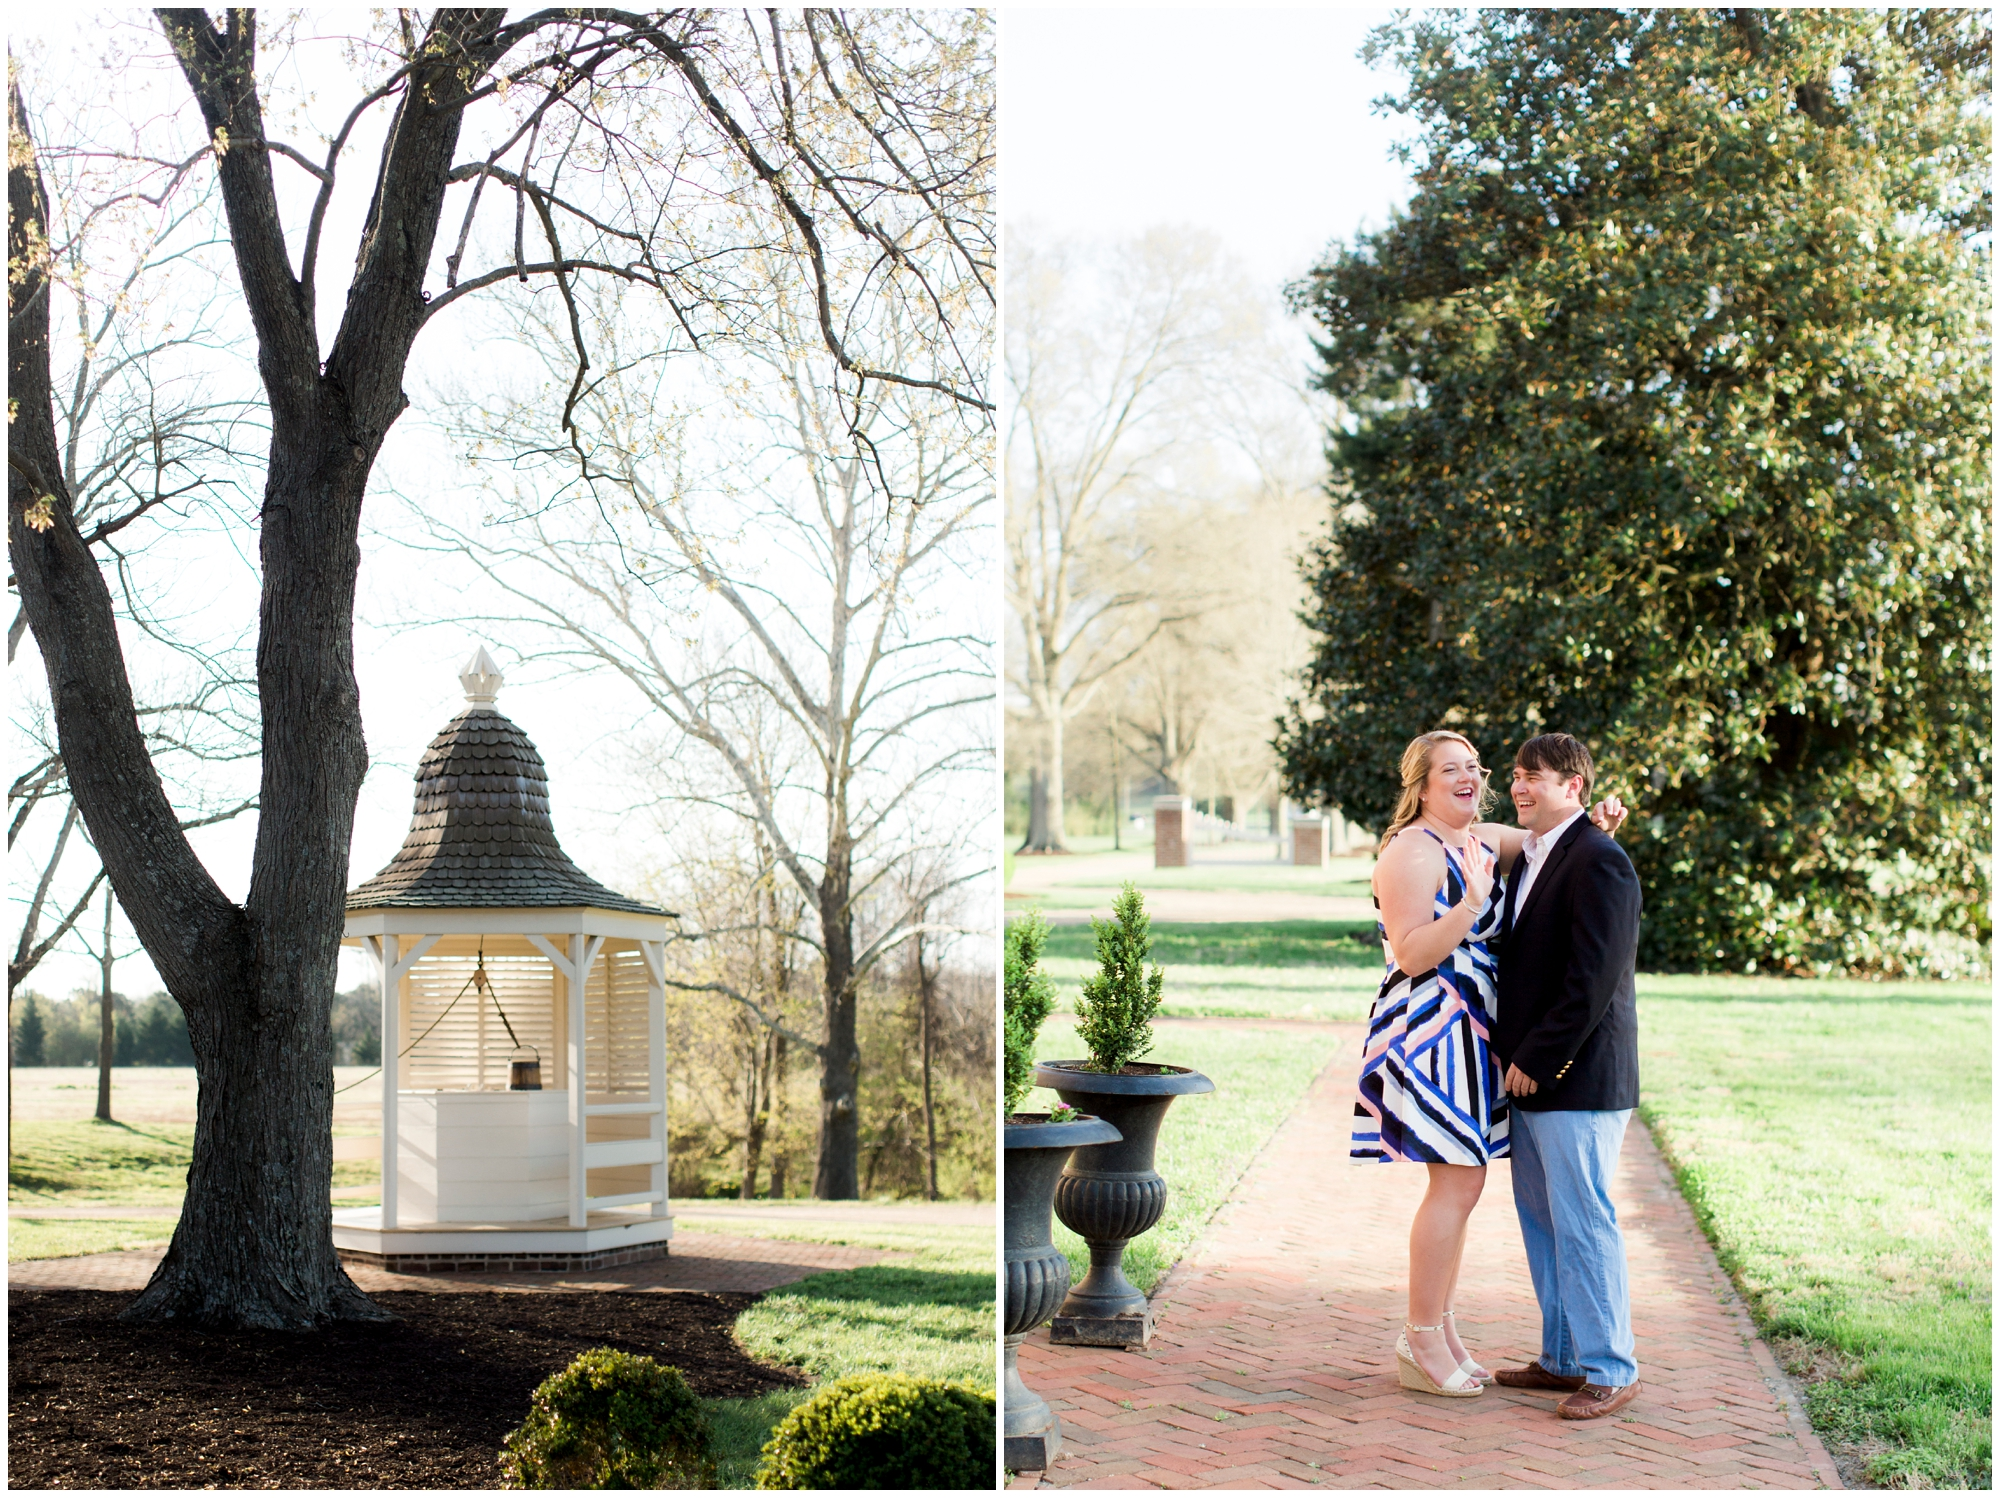 Rachel-Robert-Urbanna-Virginia-Spring-Engagement-Photos_0002.jpg